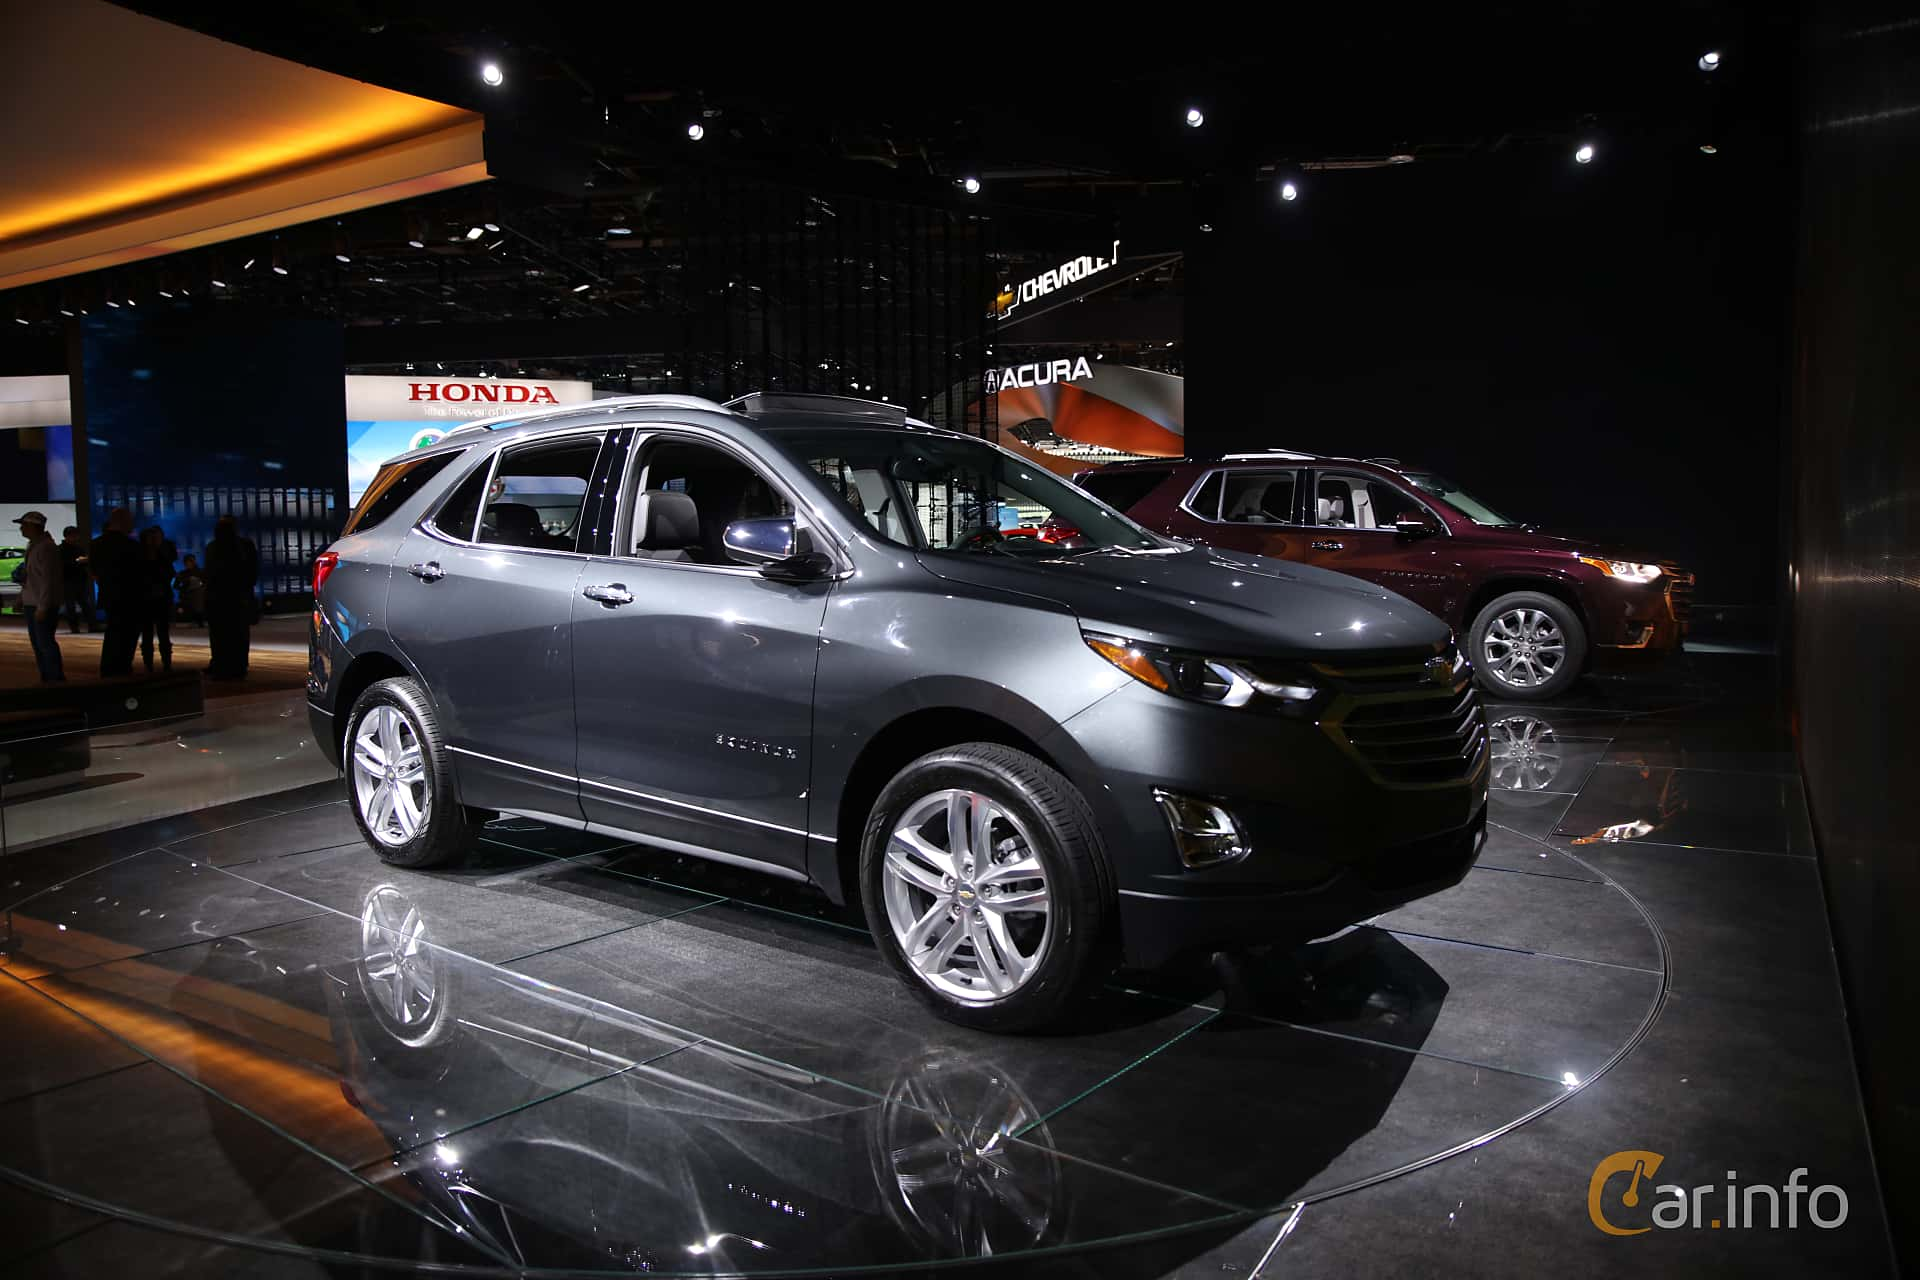 Chevrolet Equinox 2.4 AWD Automatic, 185hp, 2017 at North American International Auto Show 2017